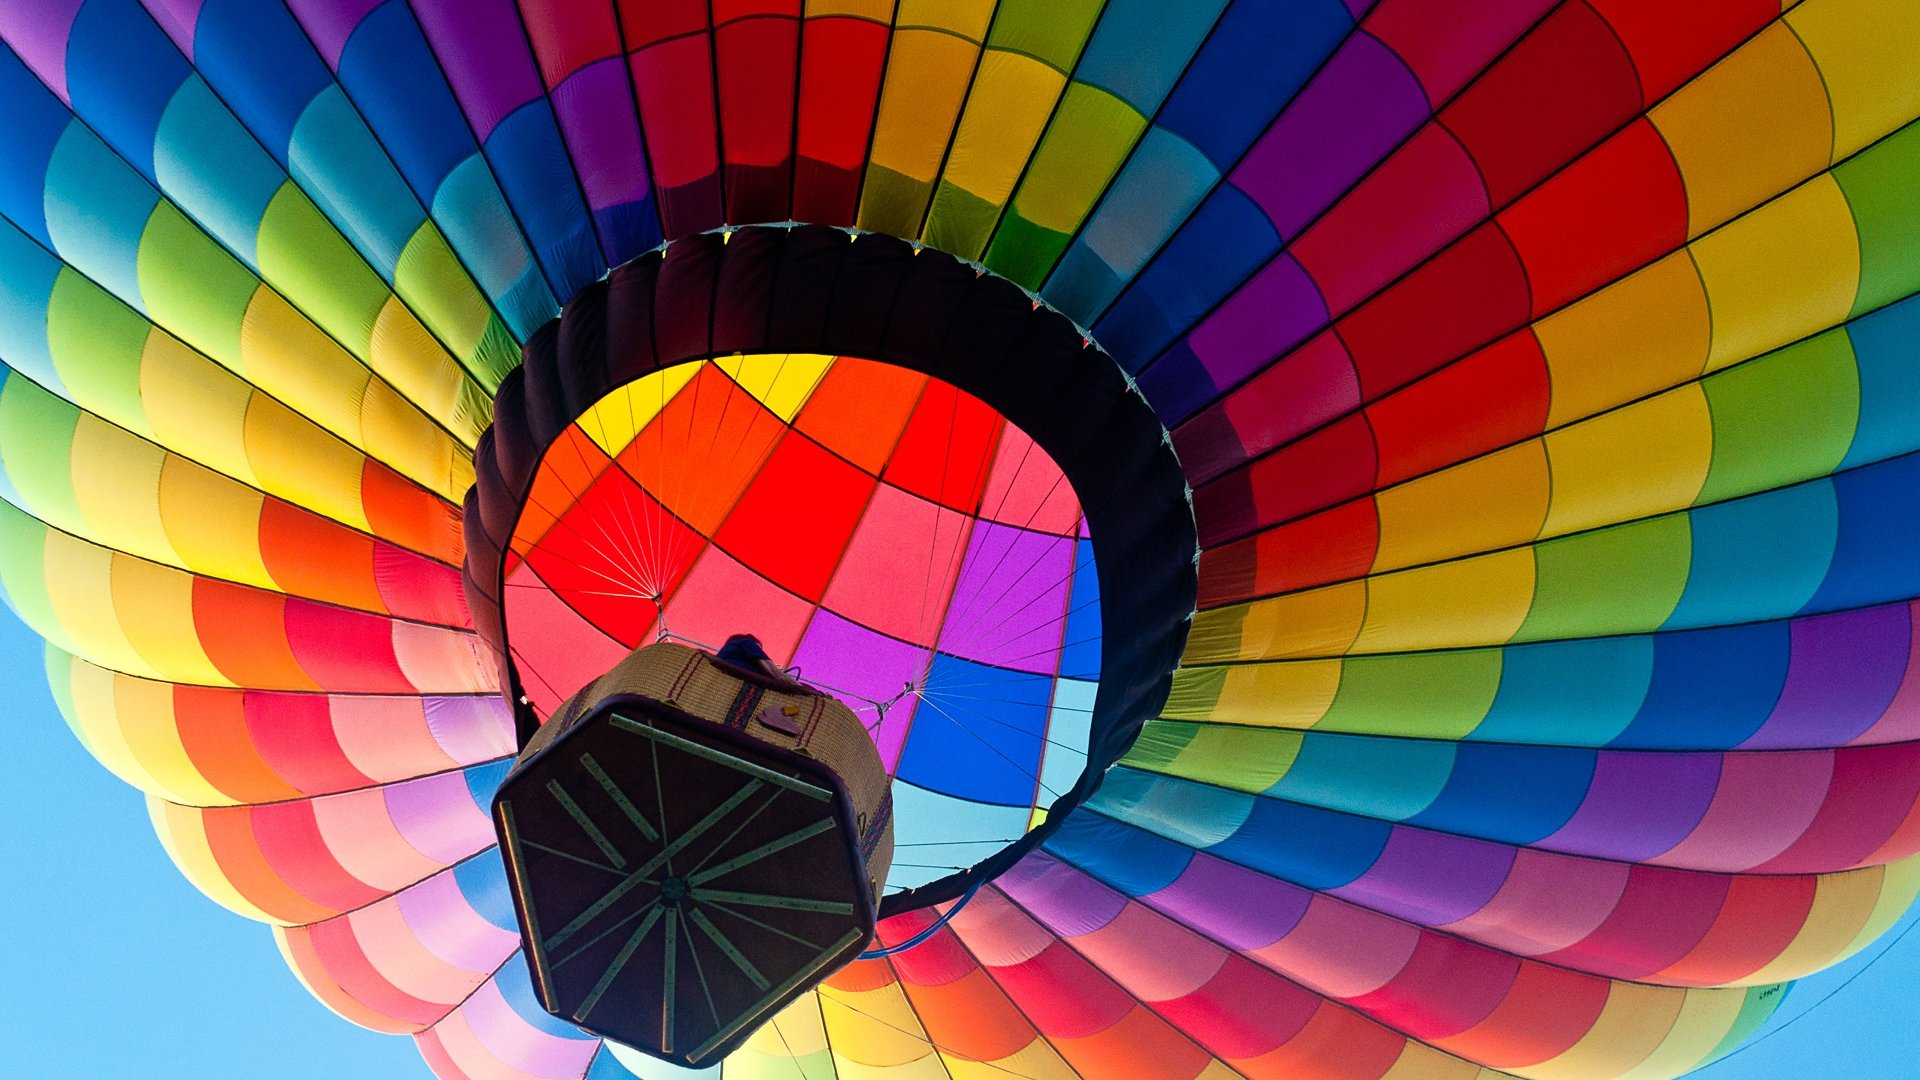 Colorful Hot Air Balloon in the Sky HD Desktop Mobile Wallpaper 1920x1080